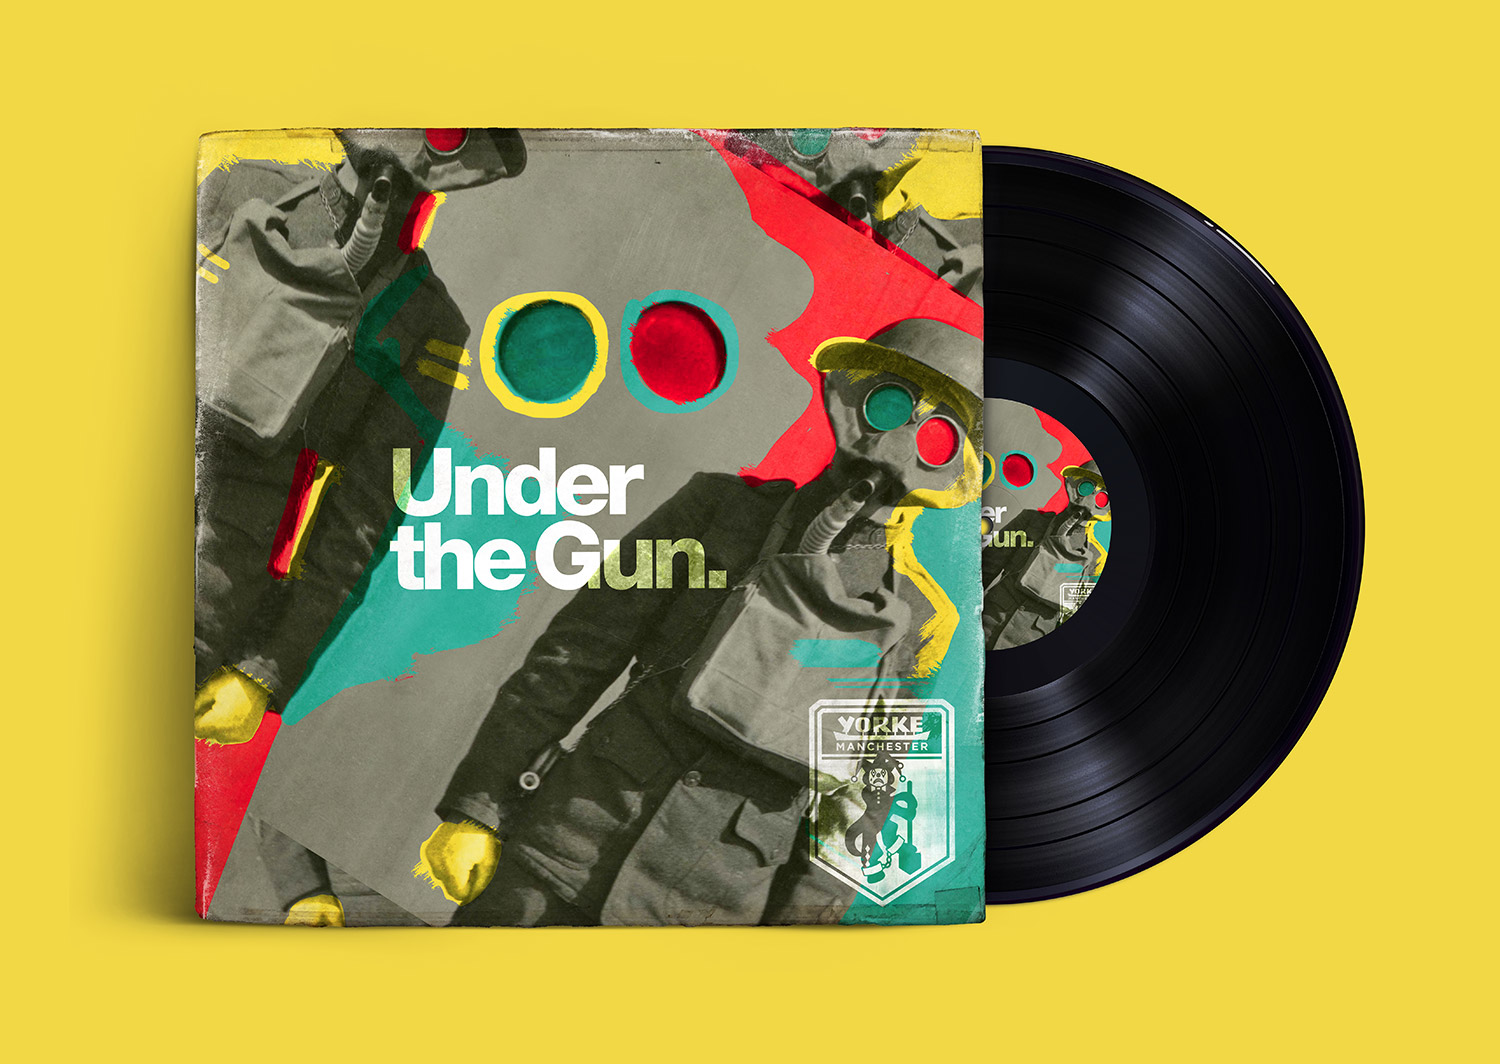 Yorke Manchester / Under the Gun Album Cover / Design by Heidi Skinner